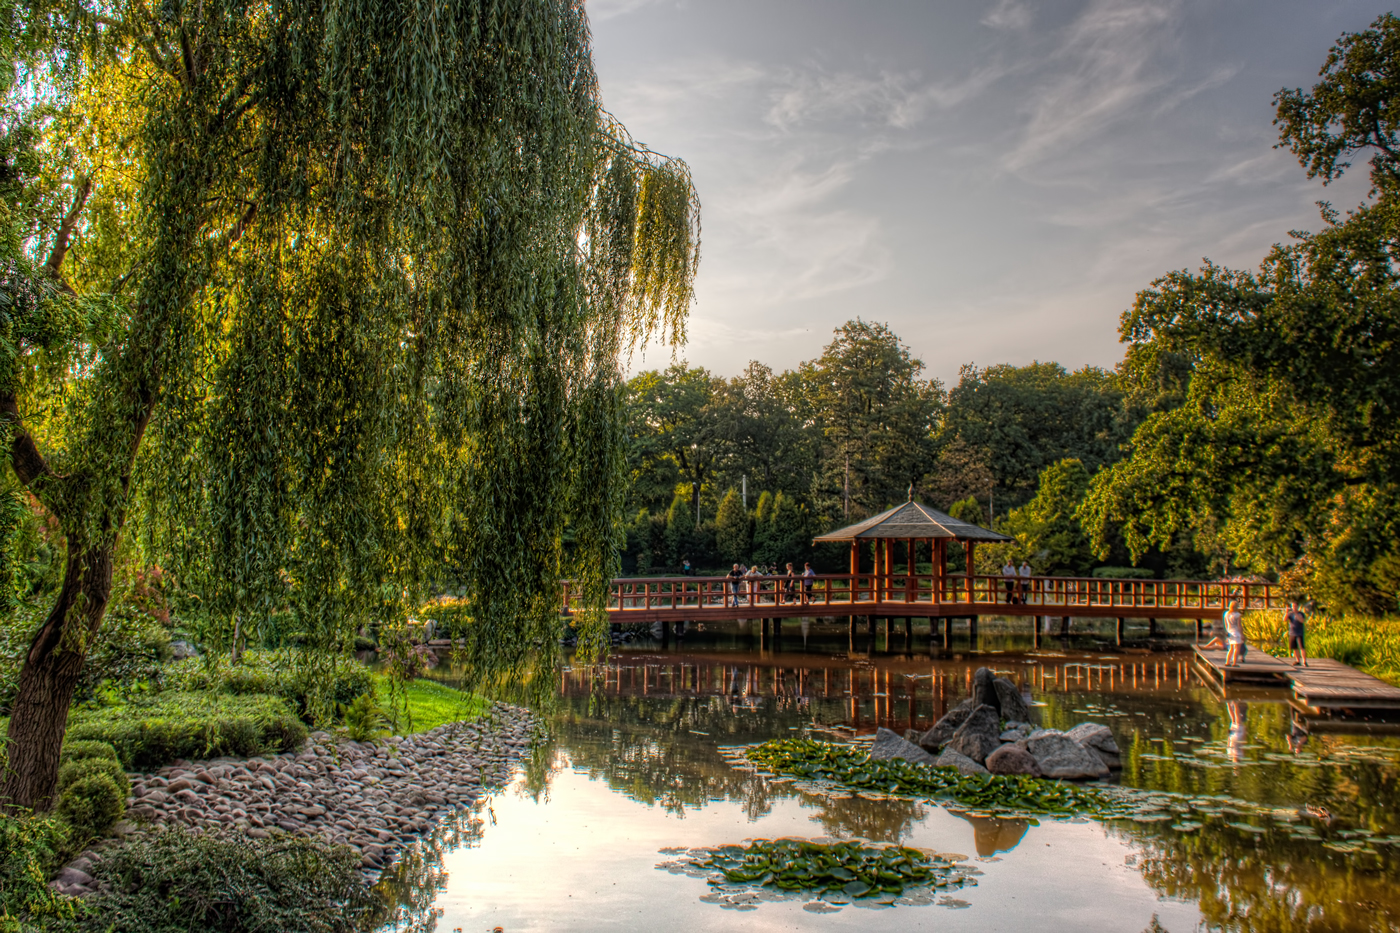 Bridge in the Japanese Garden Wroclaw